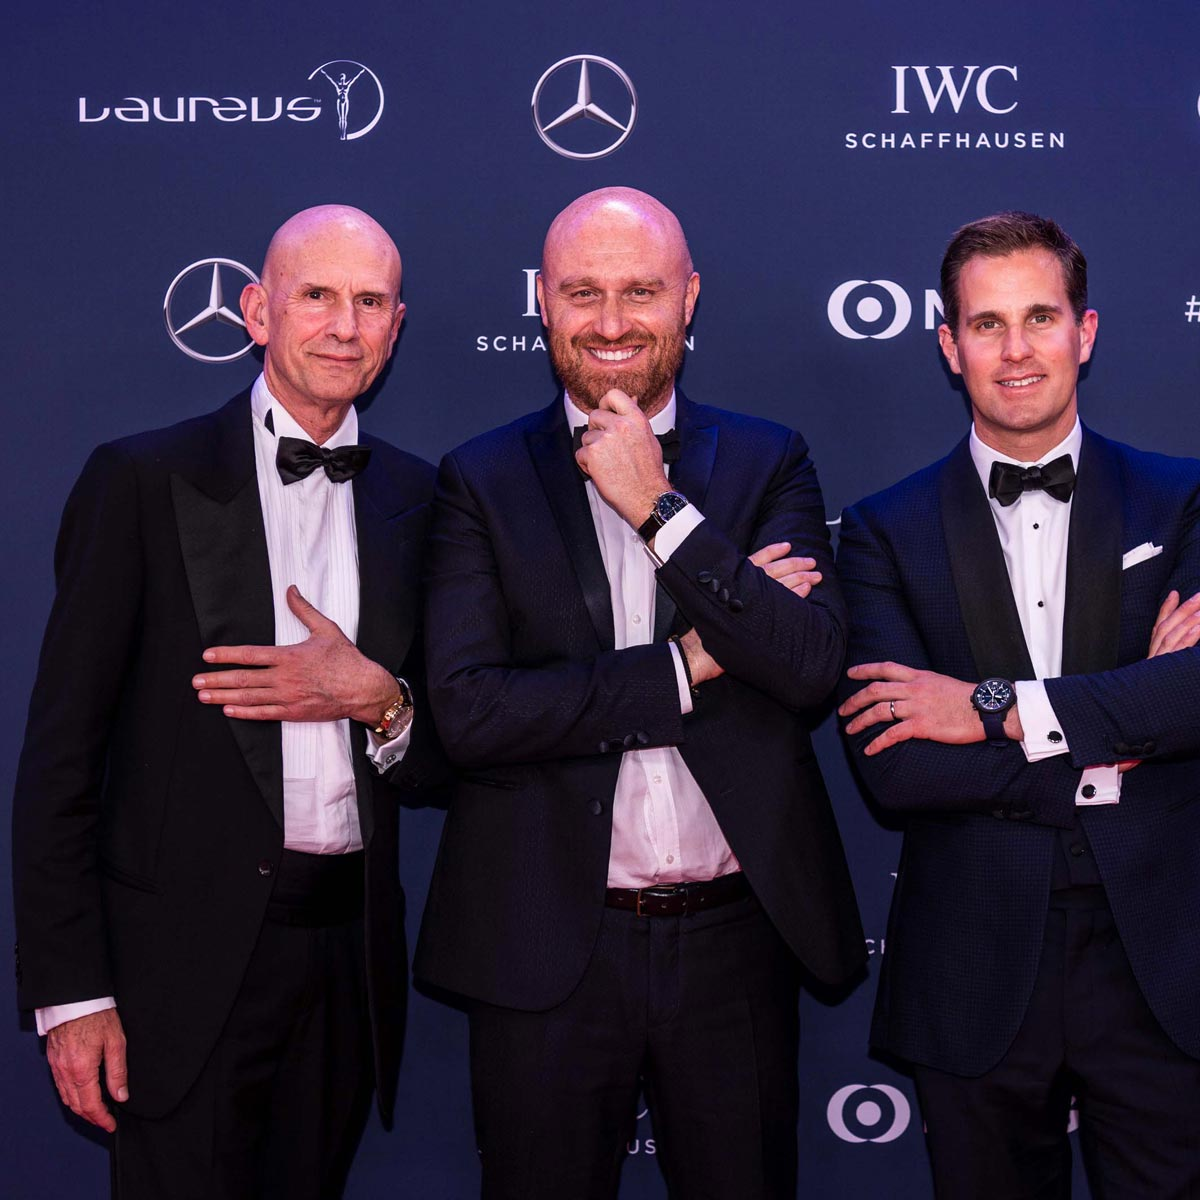 La Cote des Montres : Photo - IWC Aquatimer Chronographe Édition « Laureus Sport For Good »